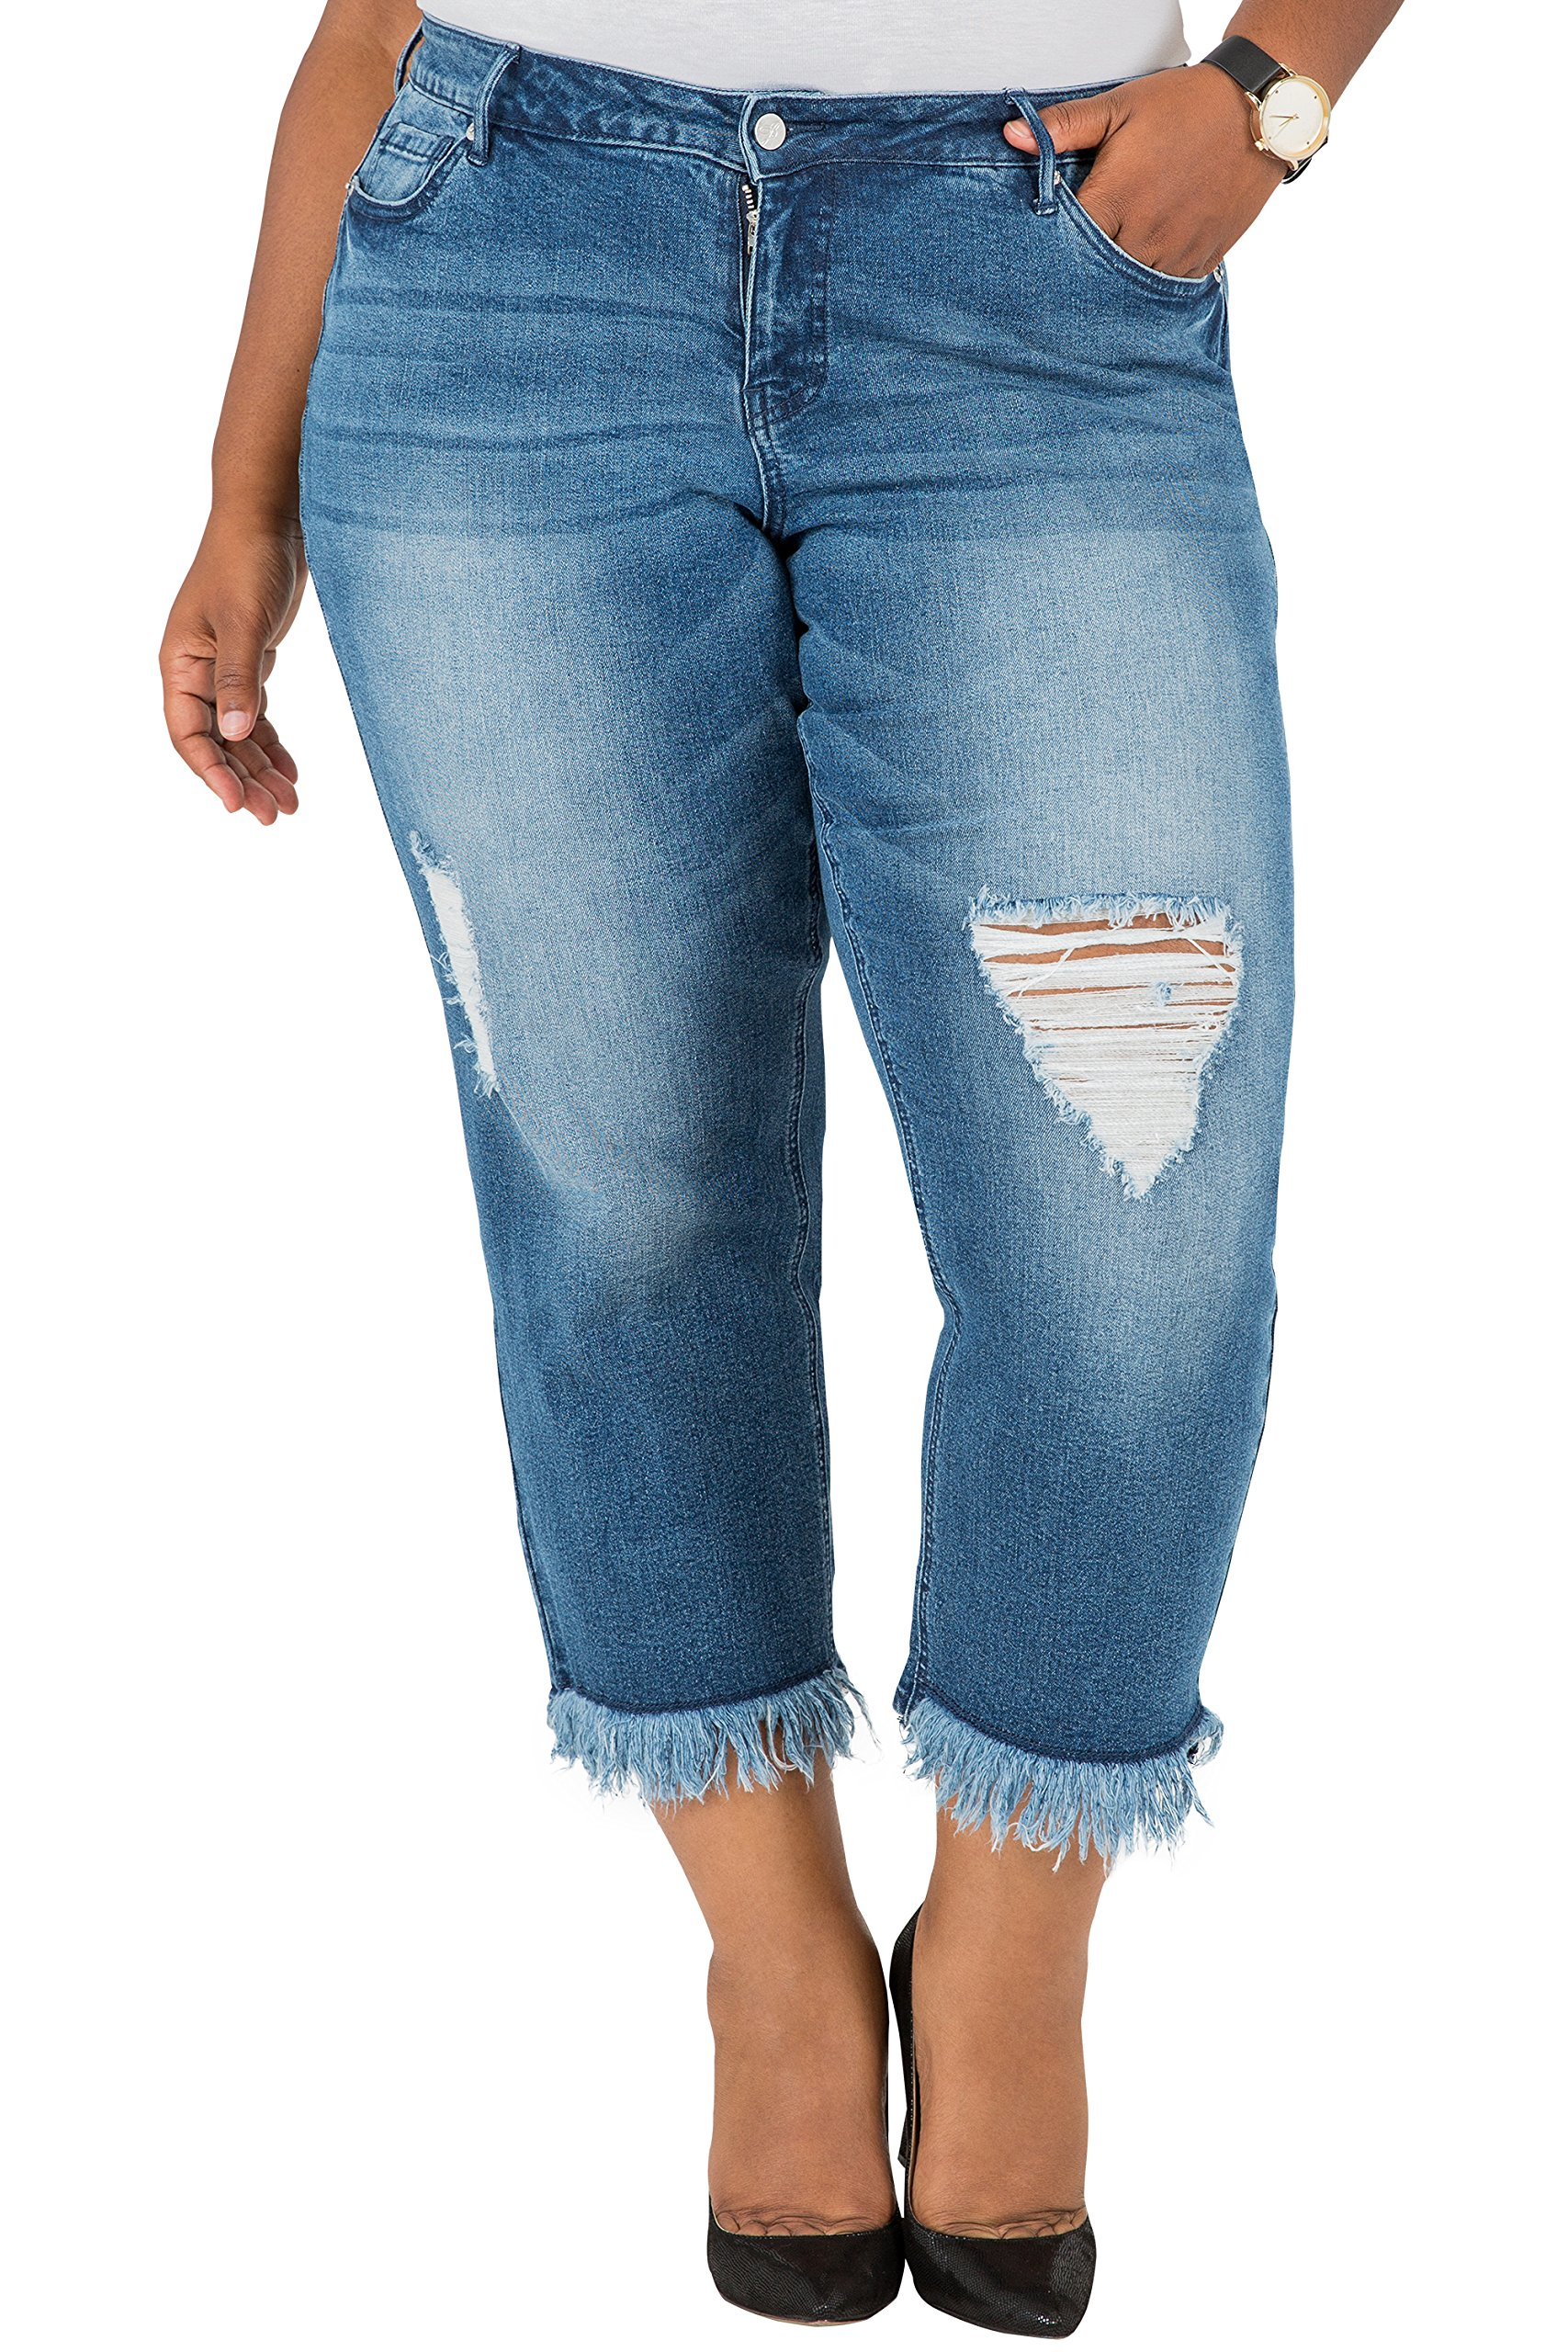 Poetic Justice Plus Size Curvy Fit Women's Cropped Frayed Boyfriend Jeans Size 14